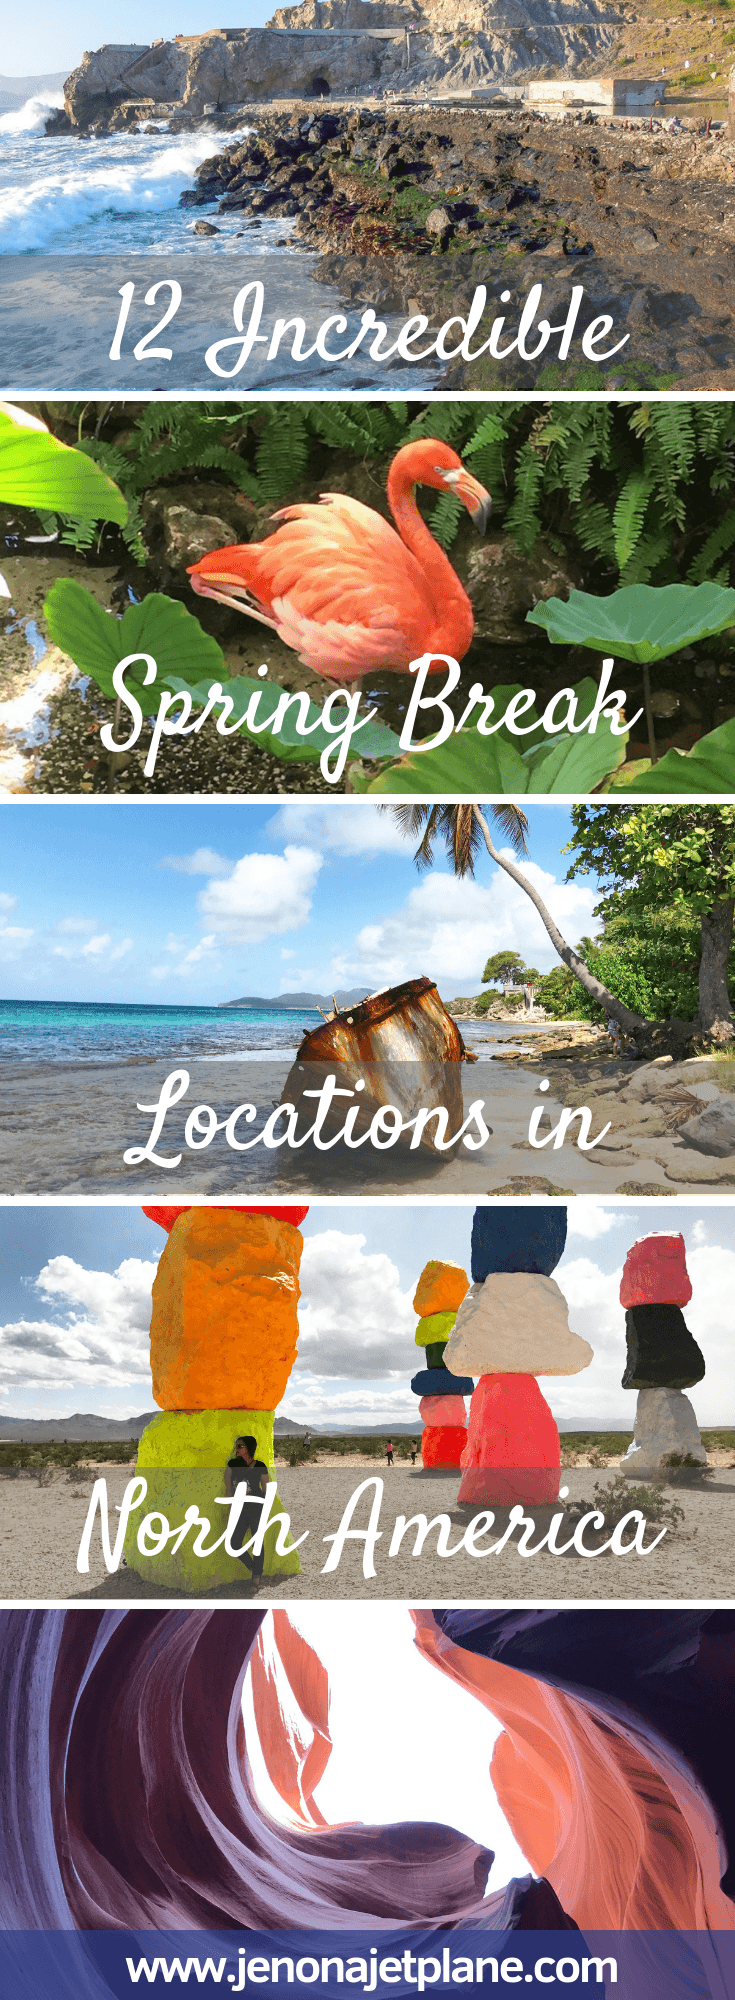 Looking for the best spring break destination in North America? From pink lakes to slot canyons, these warm and unforgettable getaways got you covered. What are you waiting for? It's time to book your next vacation. Save to your travel board for future reference. #springbreakdestinations #springbreakideas #springbreak #travelinspiration #travelunitedstates #travelamerica #springbreaktravel